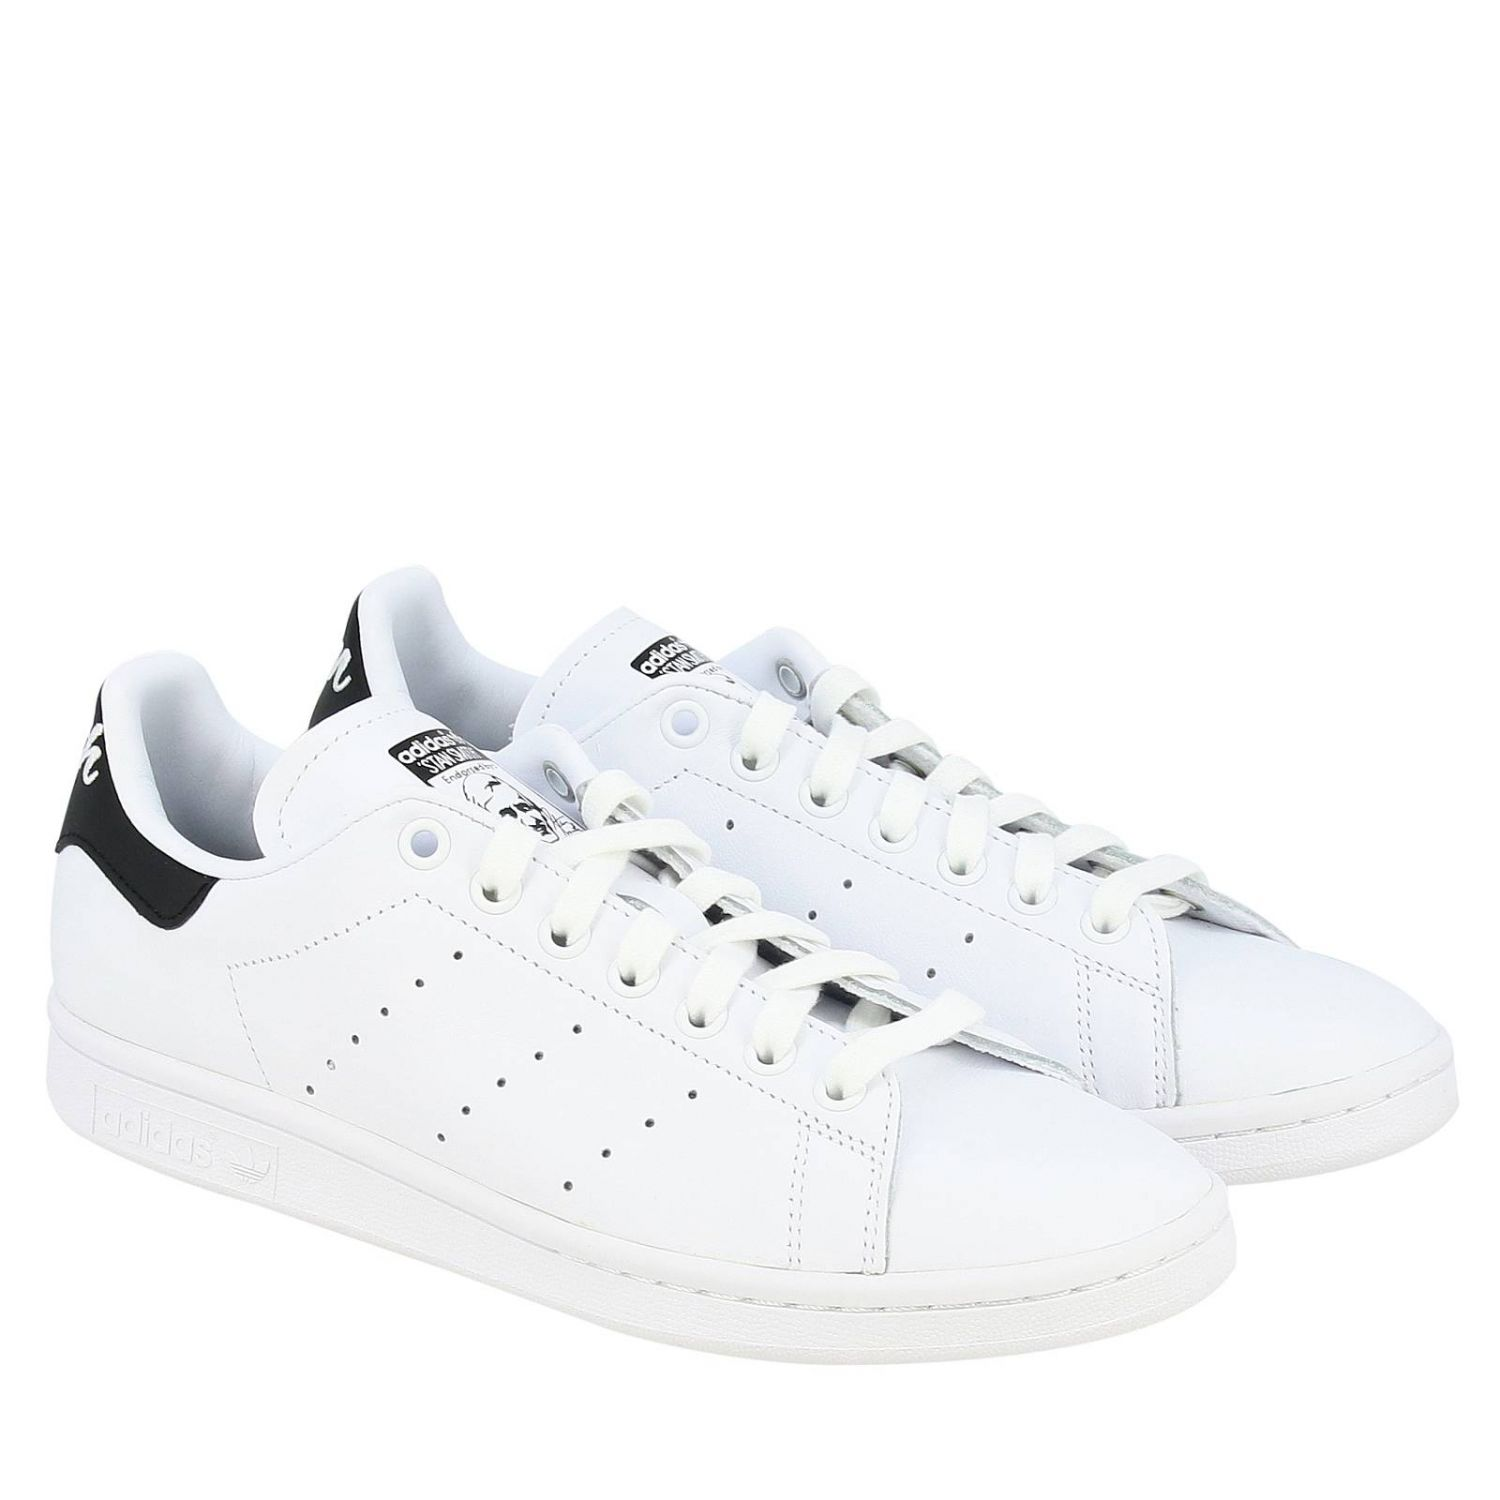 Sneakers Adidas Originals: Stan Smith Adidas Originals Sneakers in leather with contrasting heel white 2